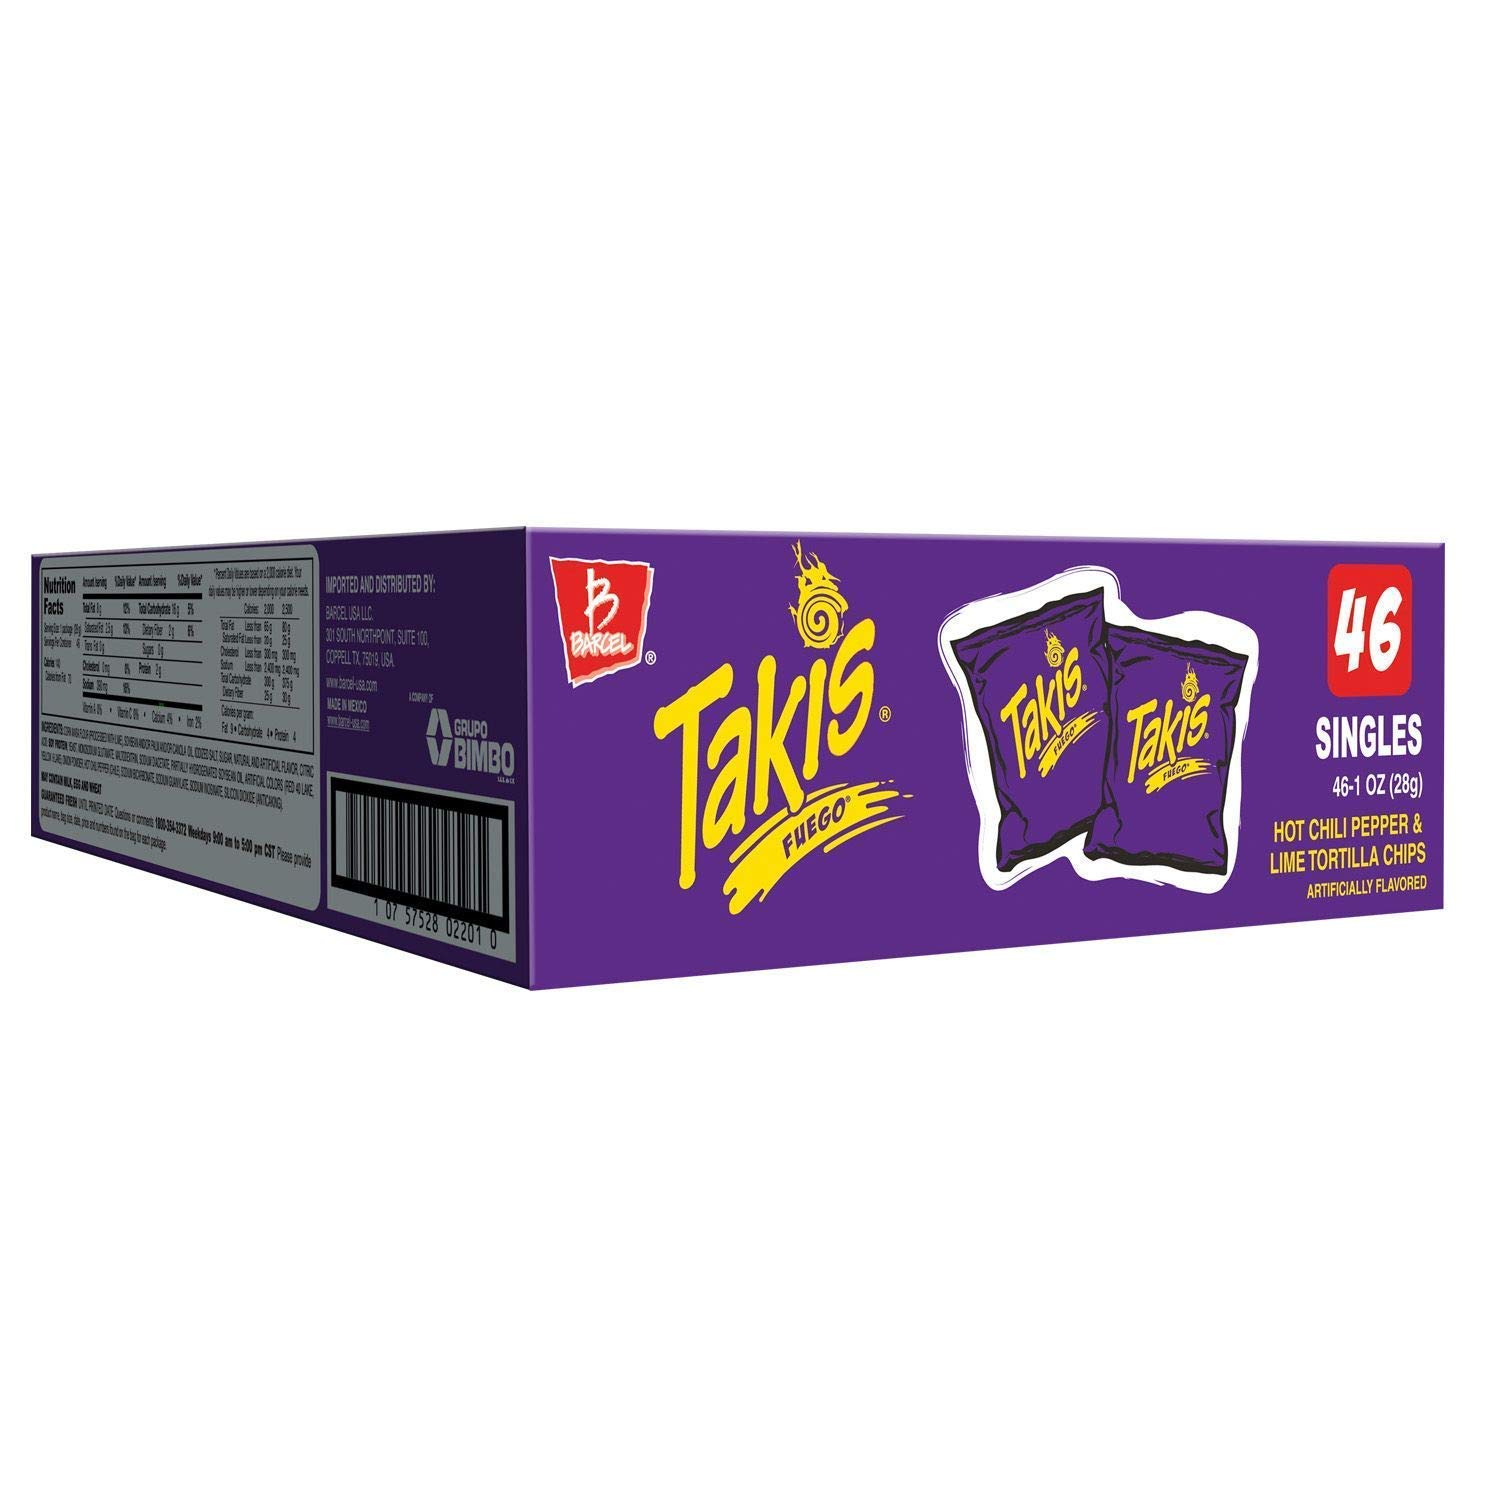 Takis Fuego (1 oz., 46 ct.) A1 (pack of 2)